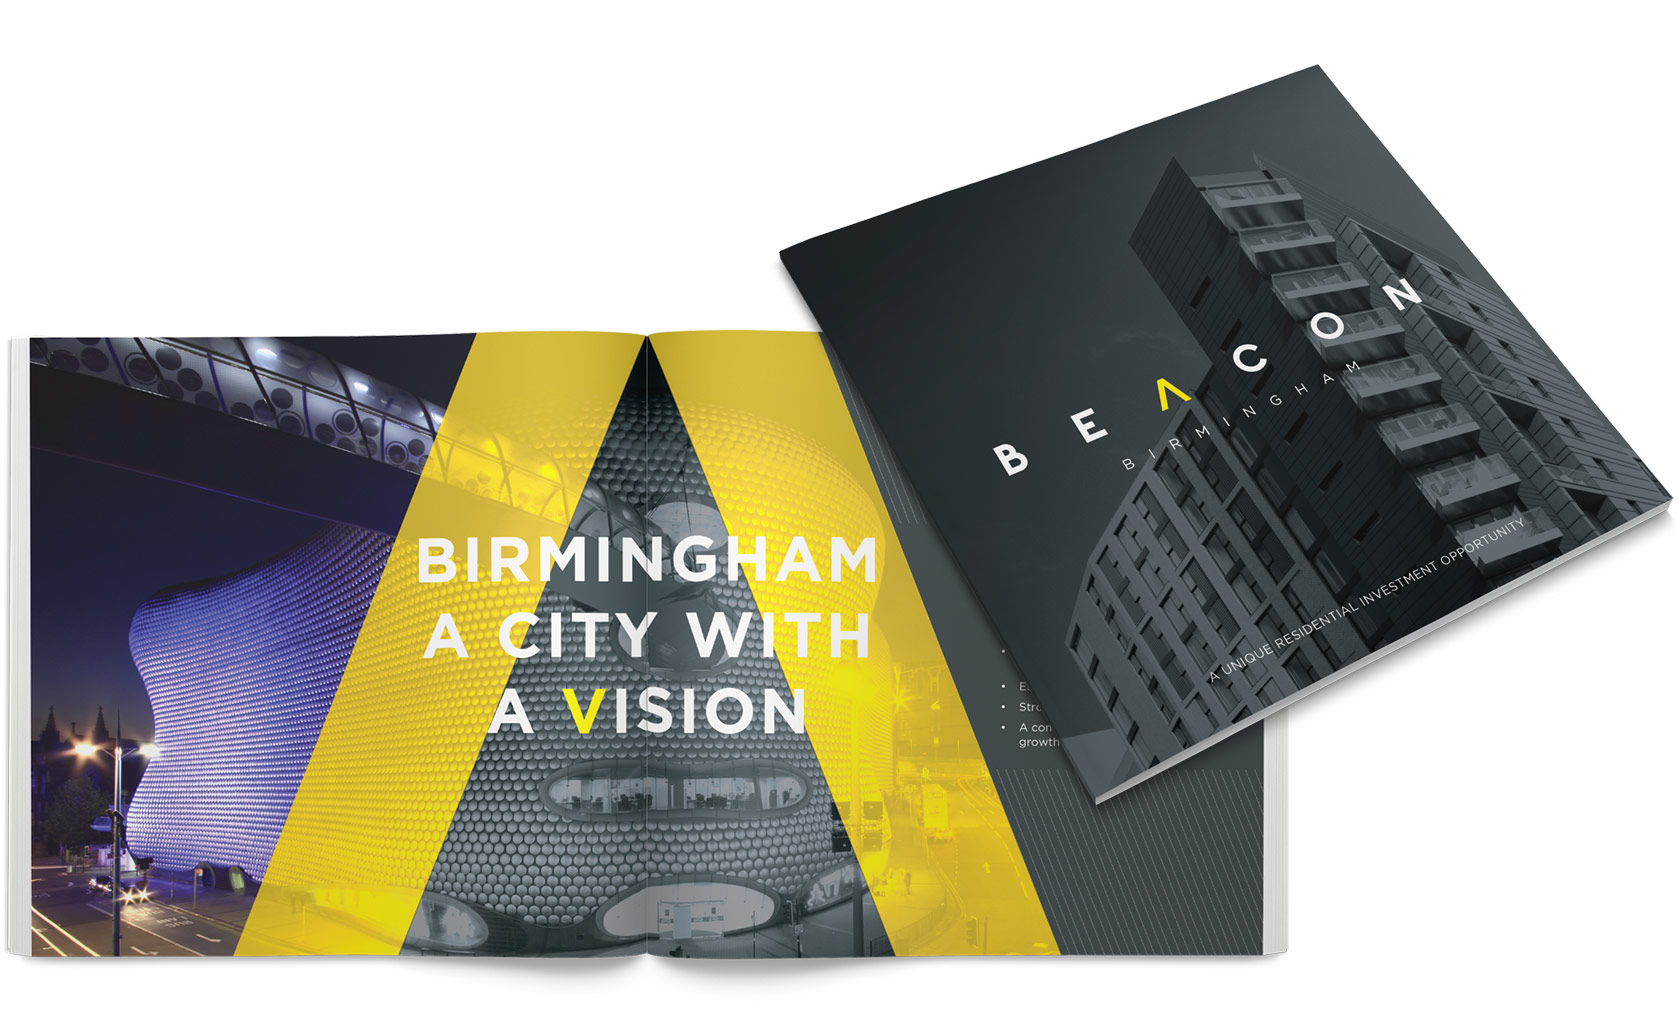 Beacon Creative Design Magazine - Our Work as a Creative Design Agency Birmingham | Jask Creative